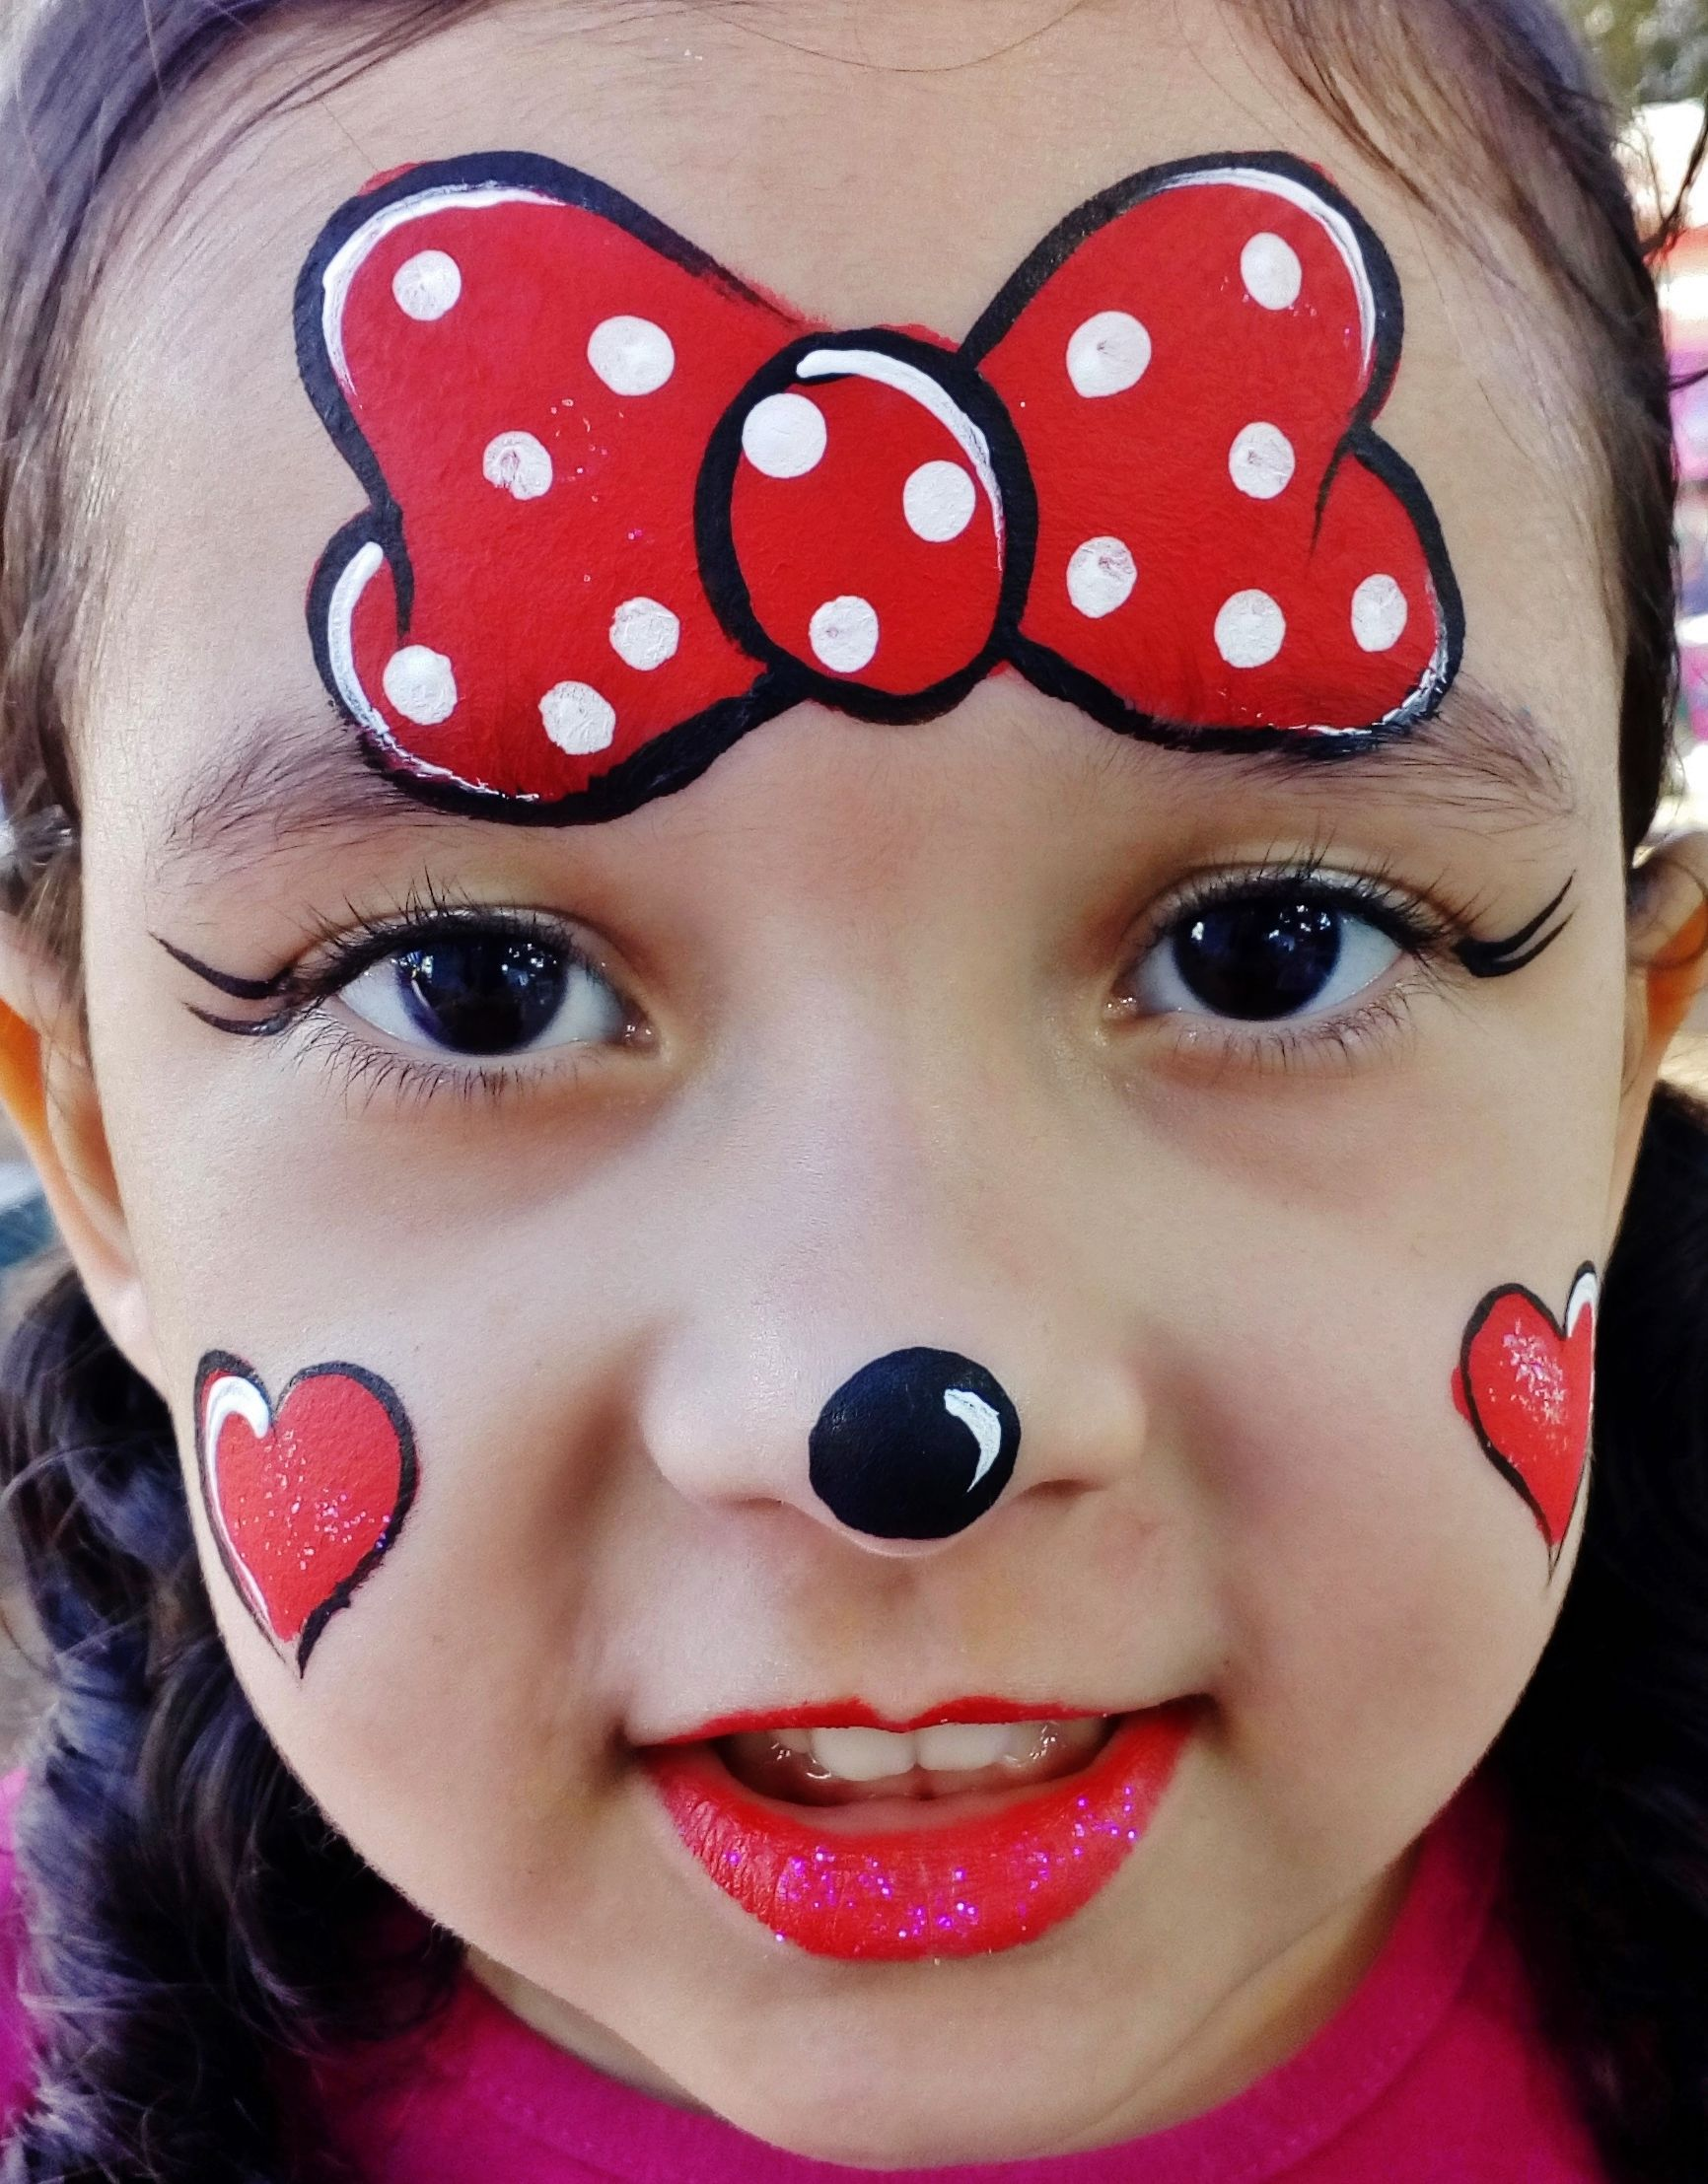 Pintura facial minnie minnie face painting pintura facial face painting pinterest - Pintura de cara ...